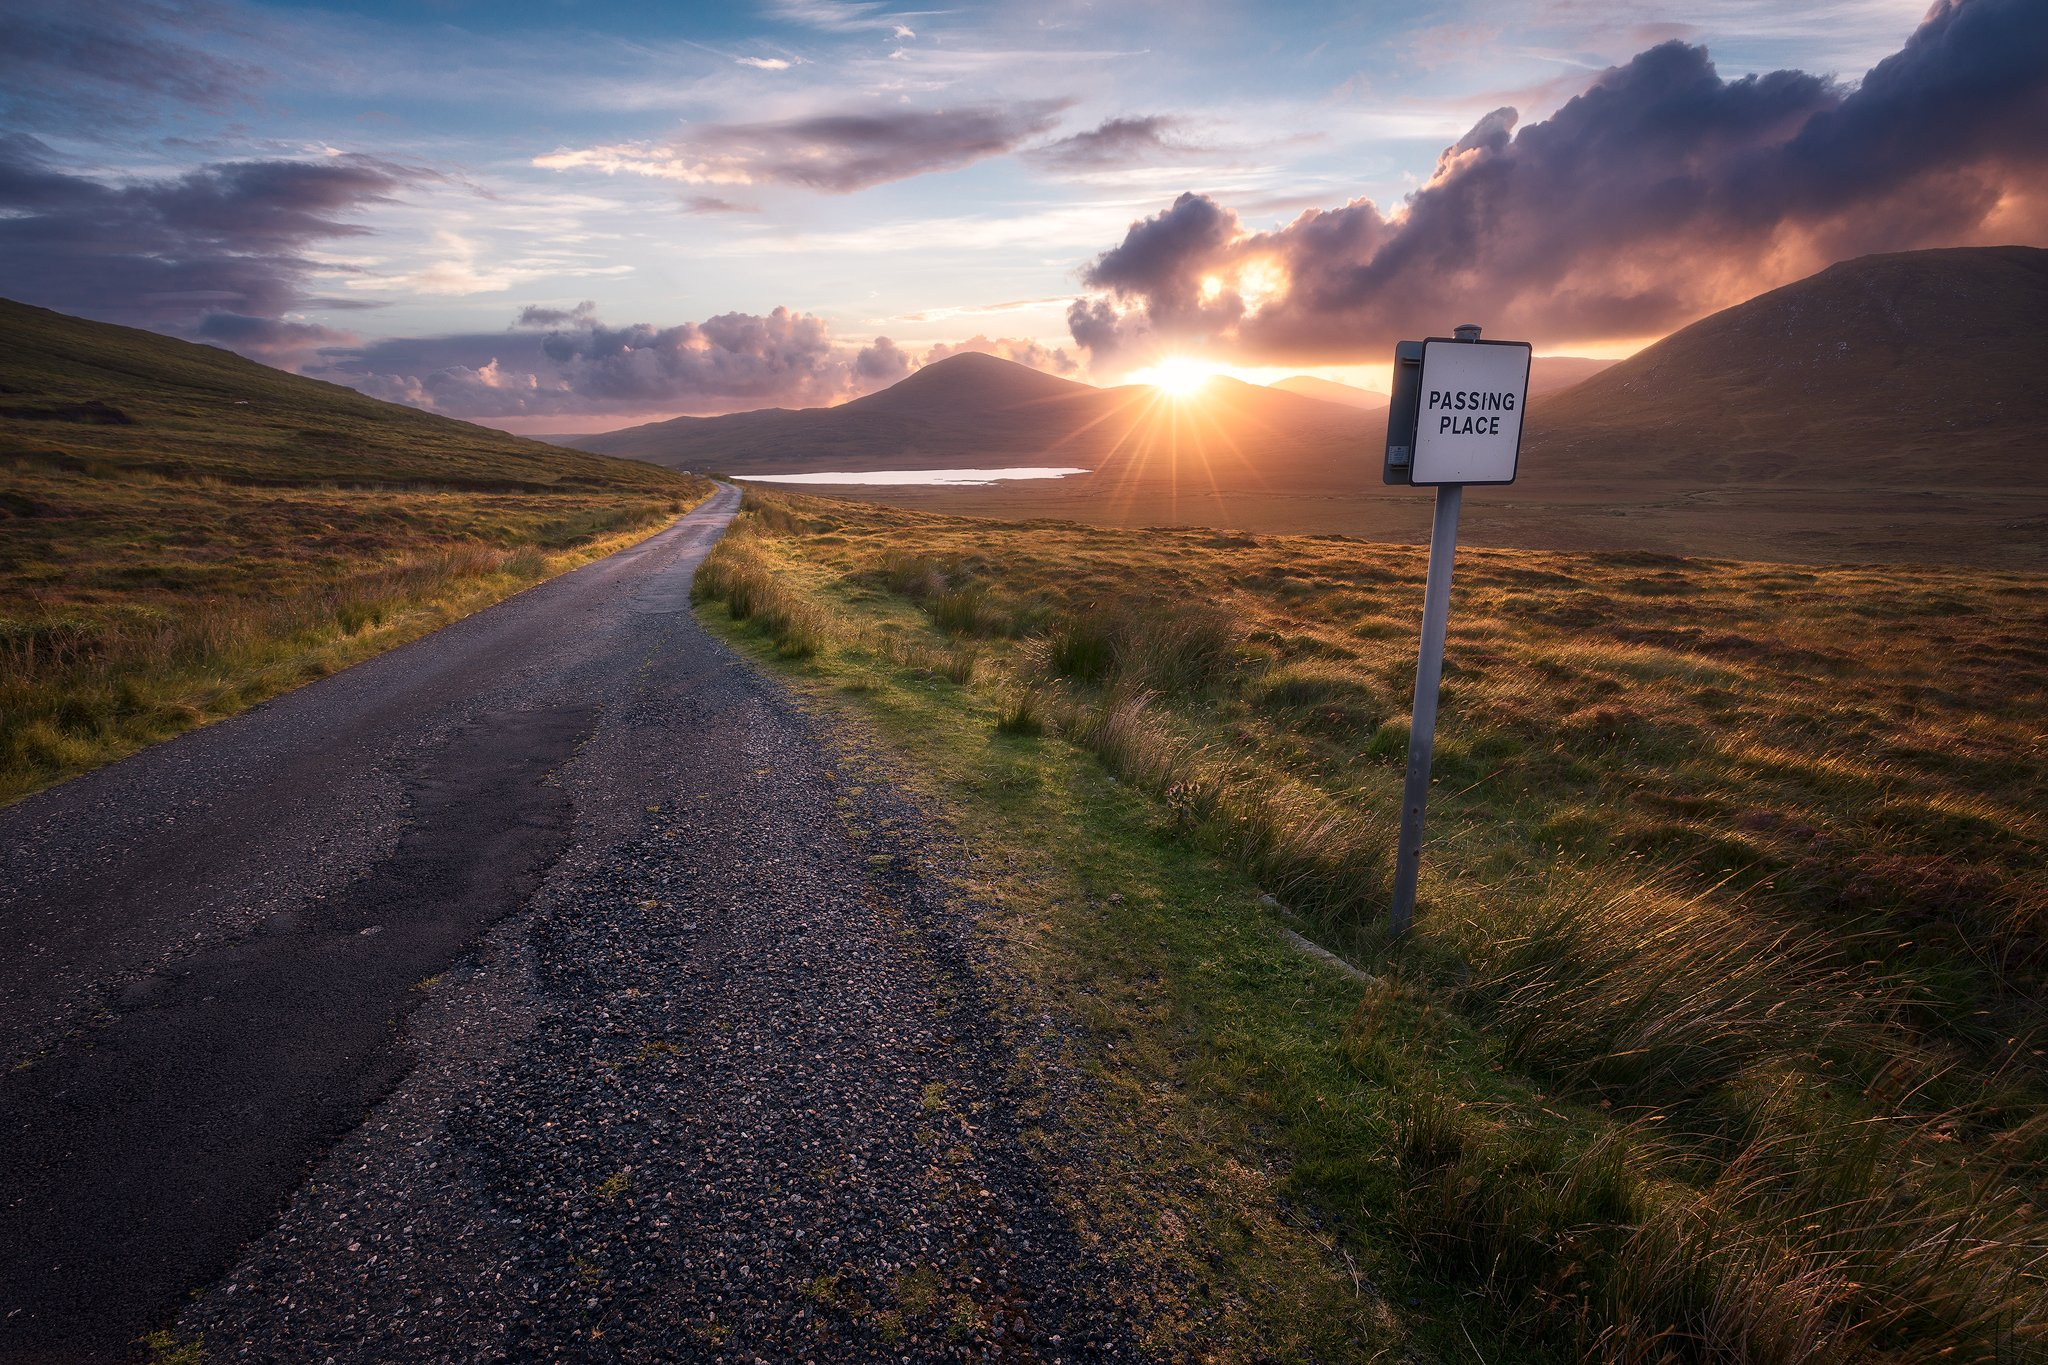 isle of harris hebrides scotland sky clouds light mood colors road sunset hills mountains, Maciej Warchoł